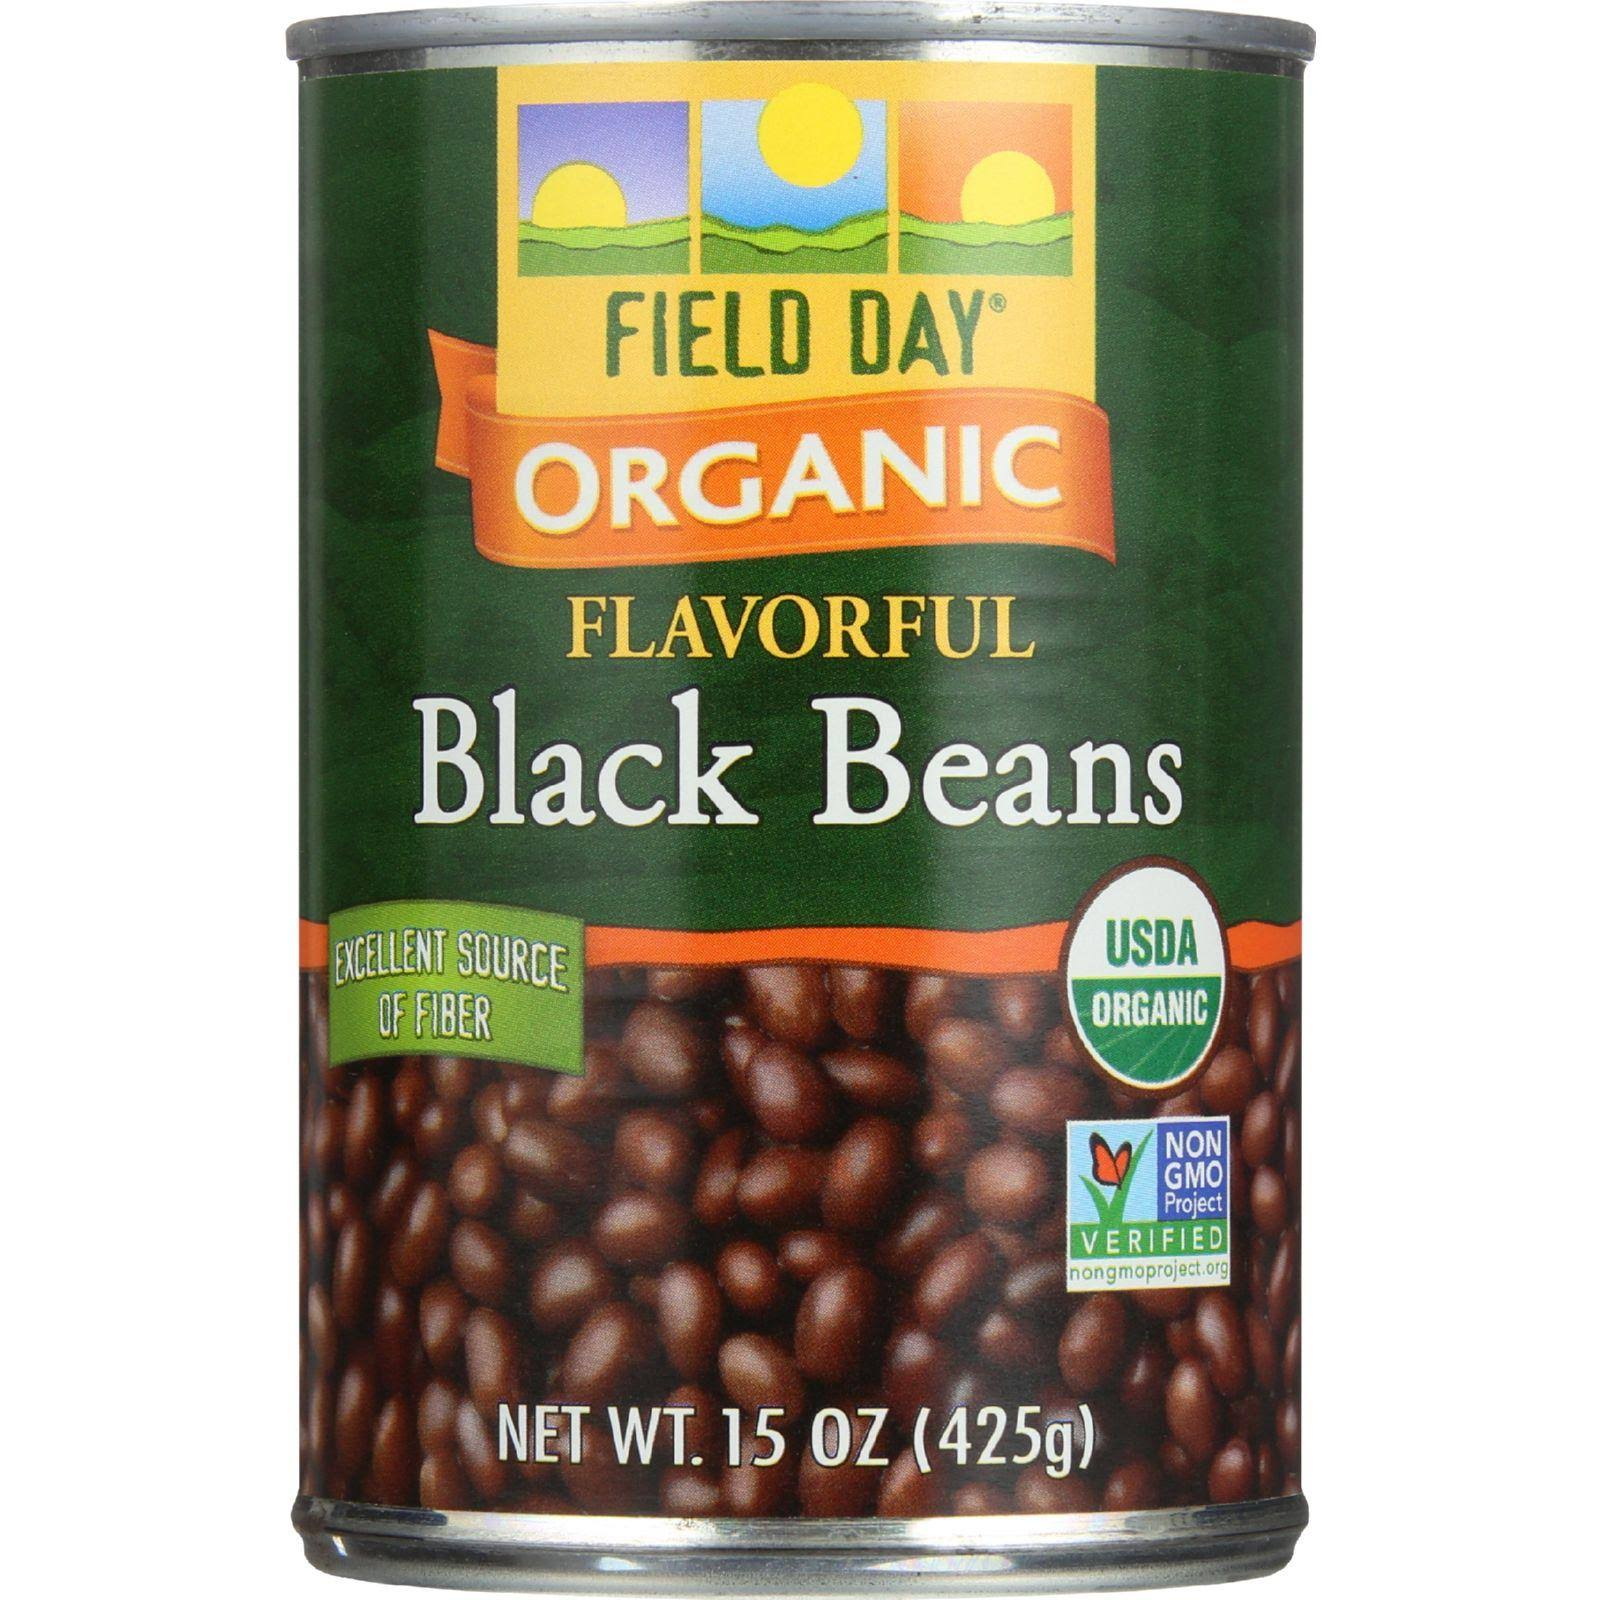 Field Day Black Beans - 15 oz